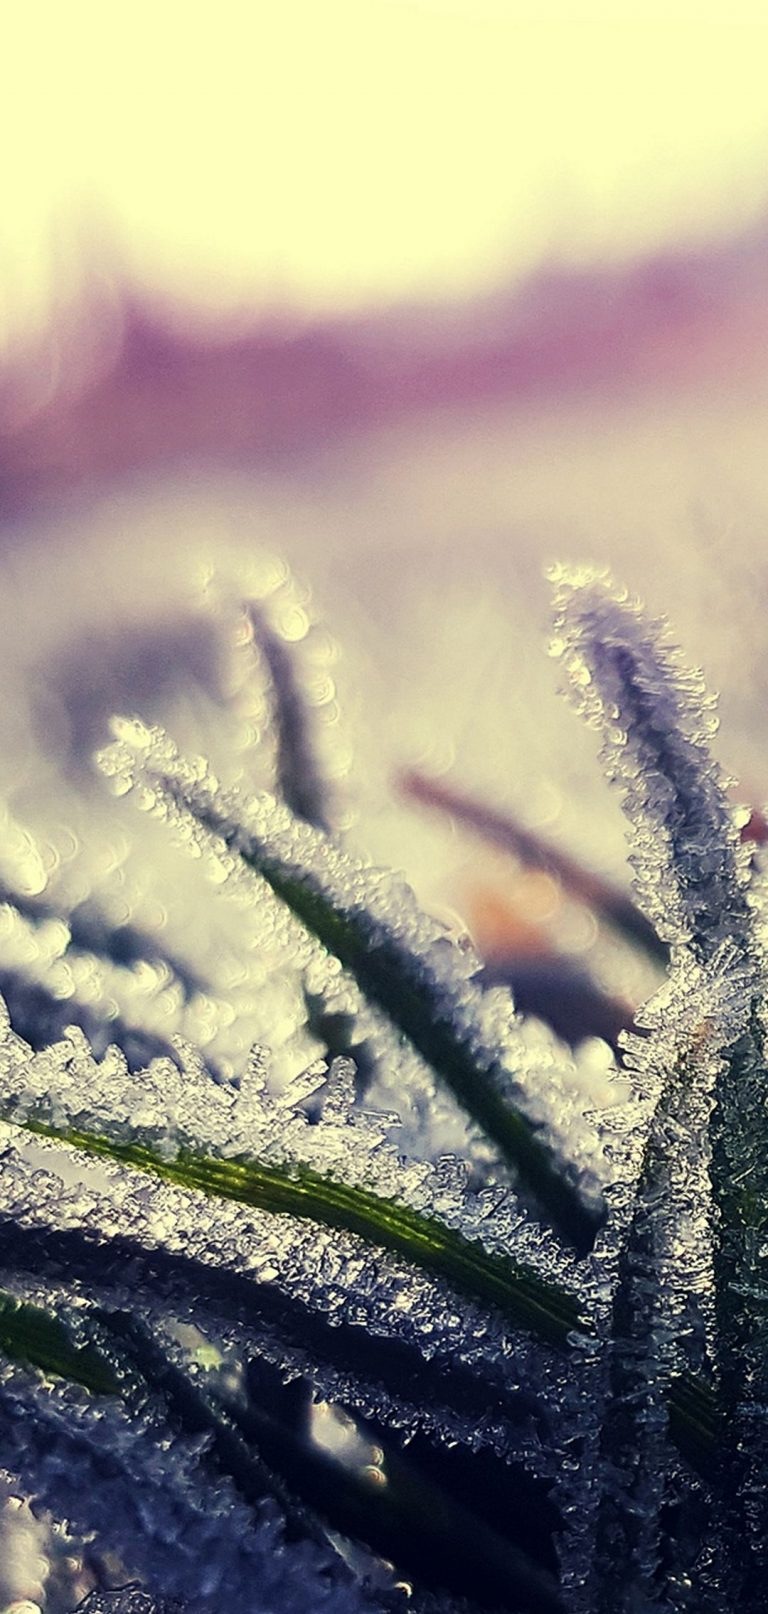 Grass Frost Ice Close Up 1080x2270 768x1614